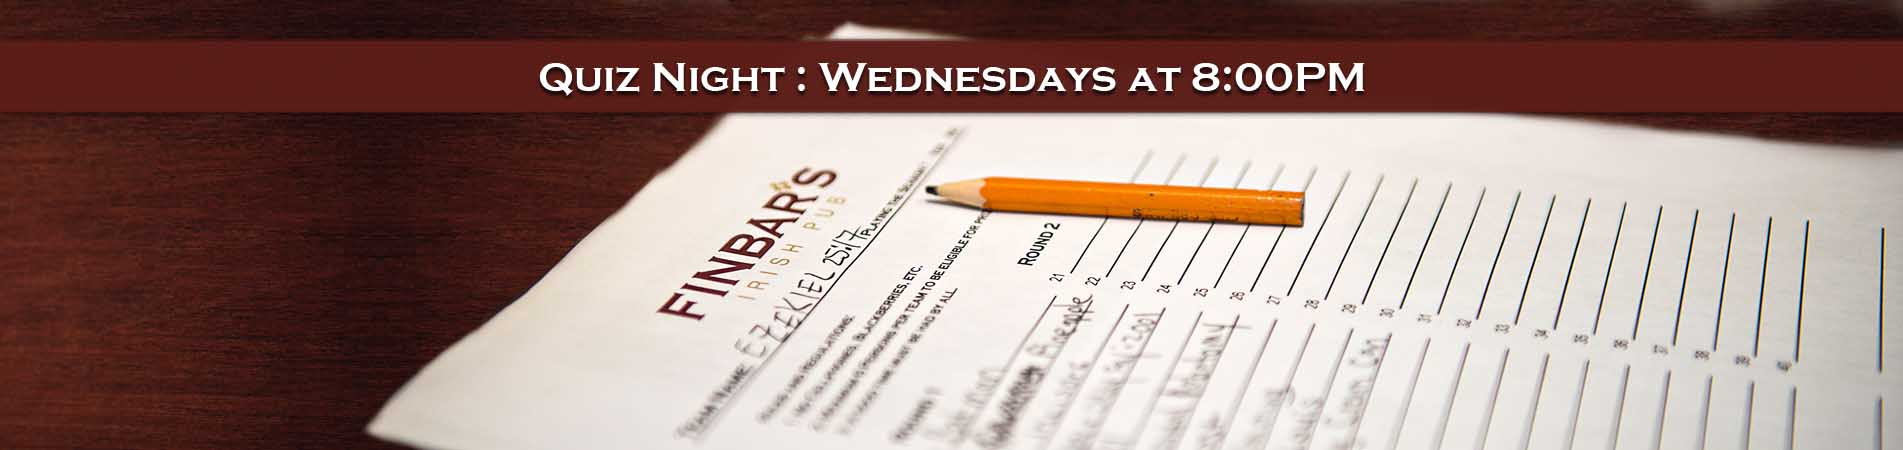 Quiz Night - Wednesdays at 8:00PM